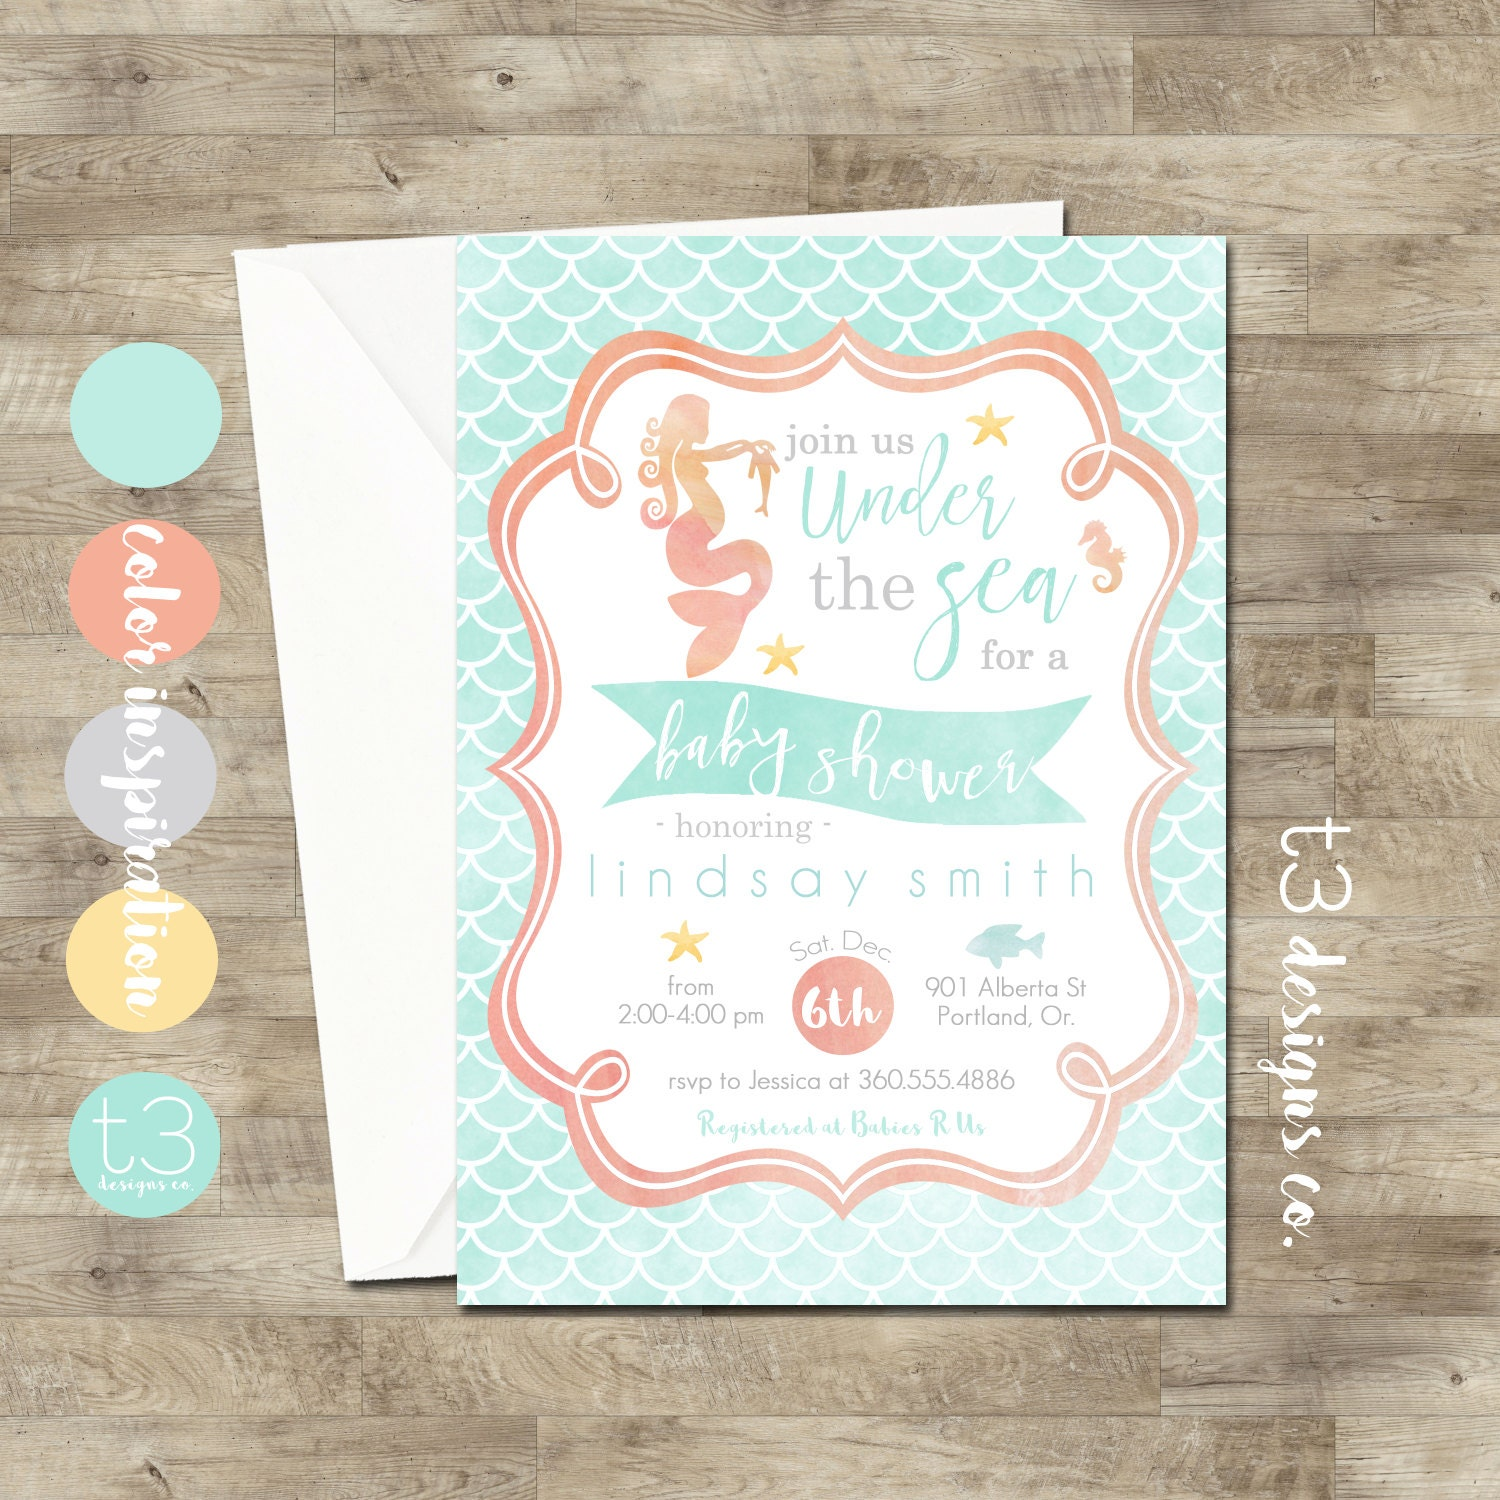 Ocean Baby Shower Invitations Sea and Ocean Theme Baby Shower ...